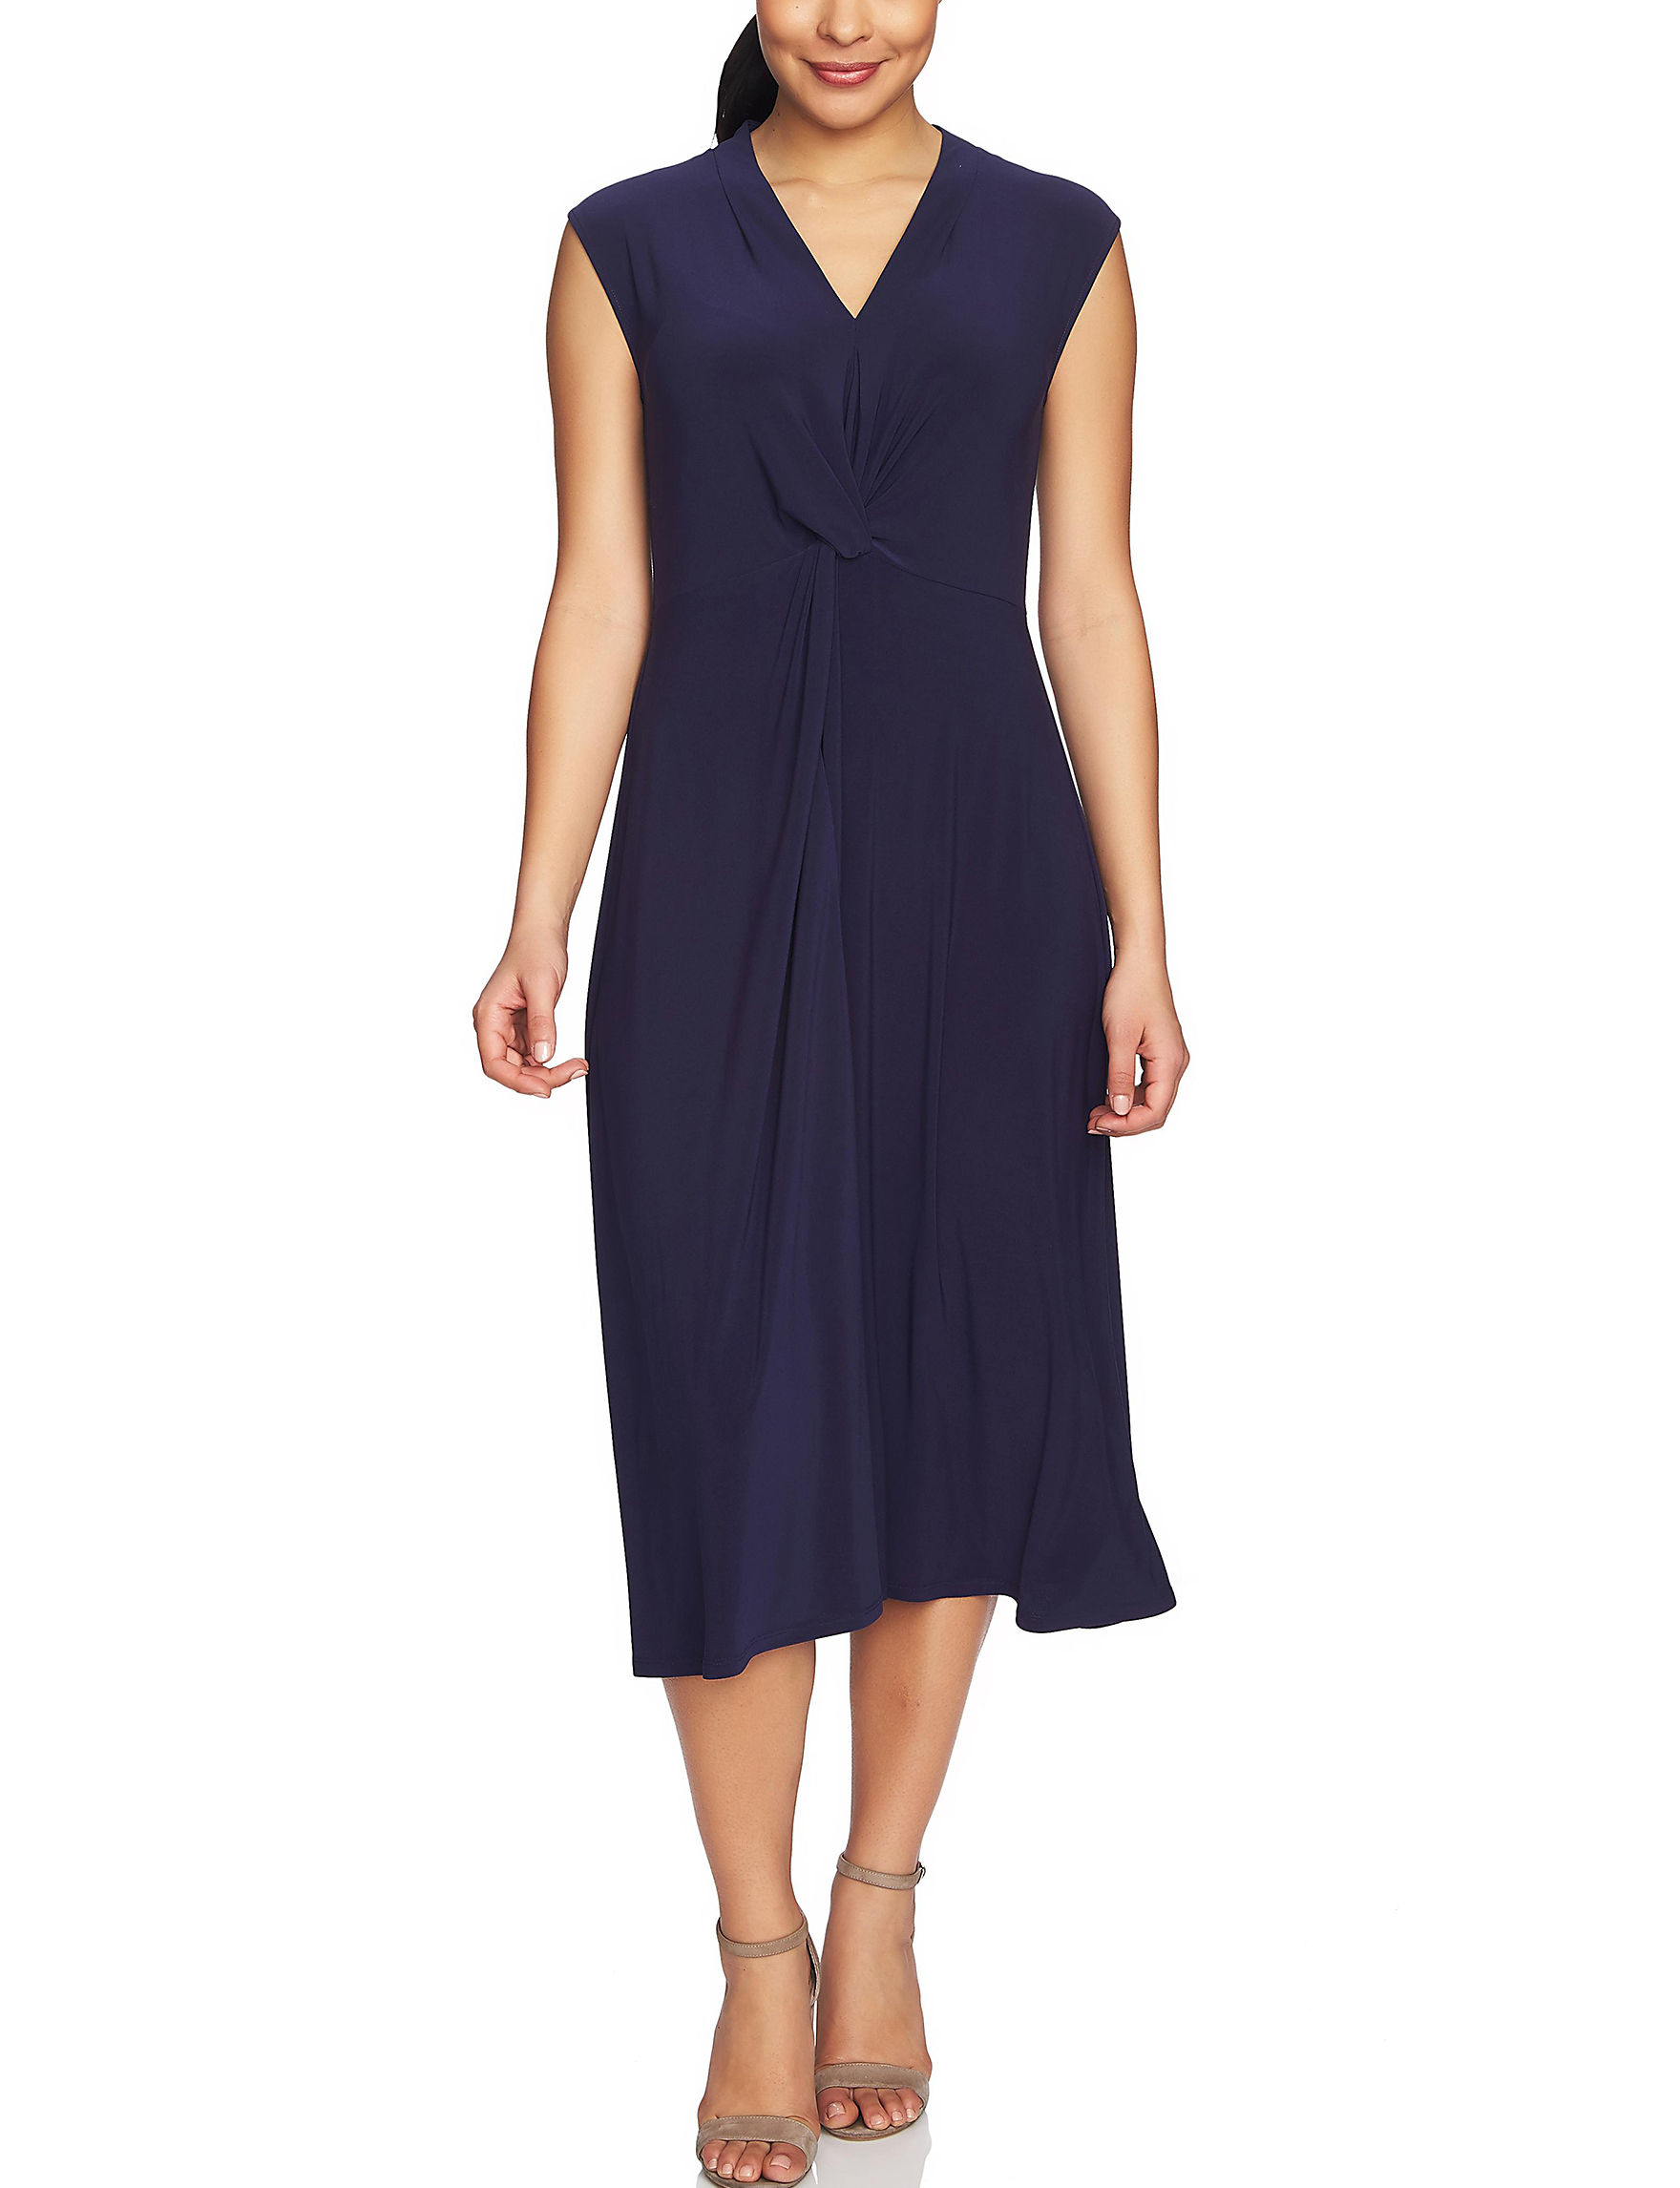 Chaus Navy Everyday & Casual Fit & Flare Dresses